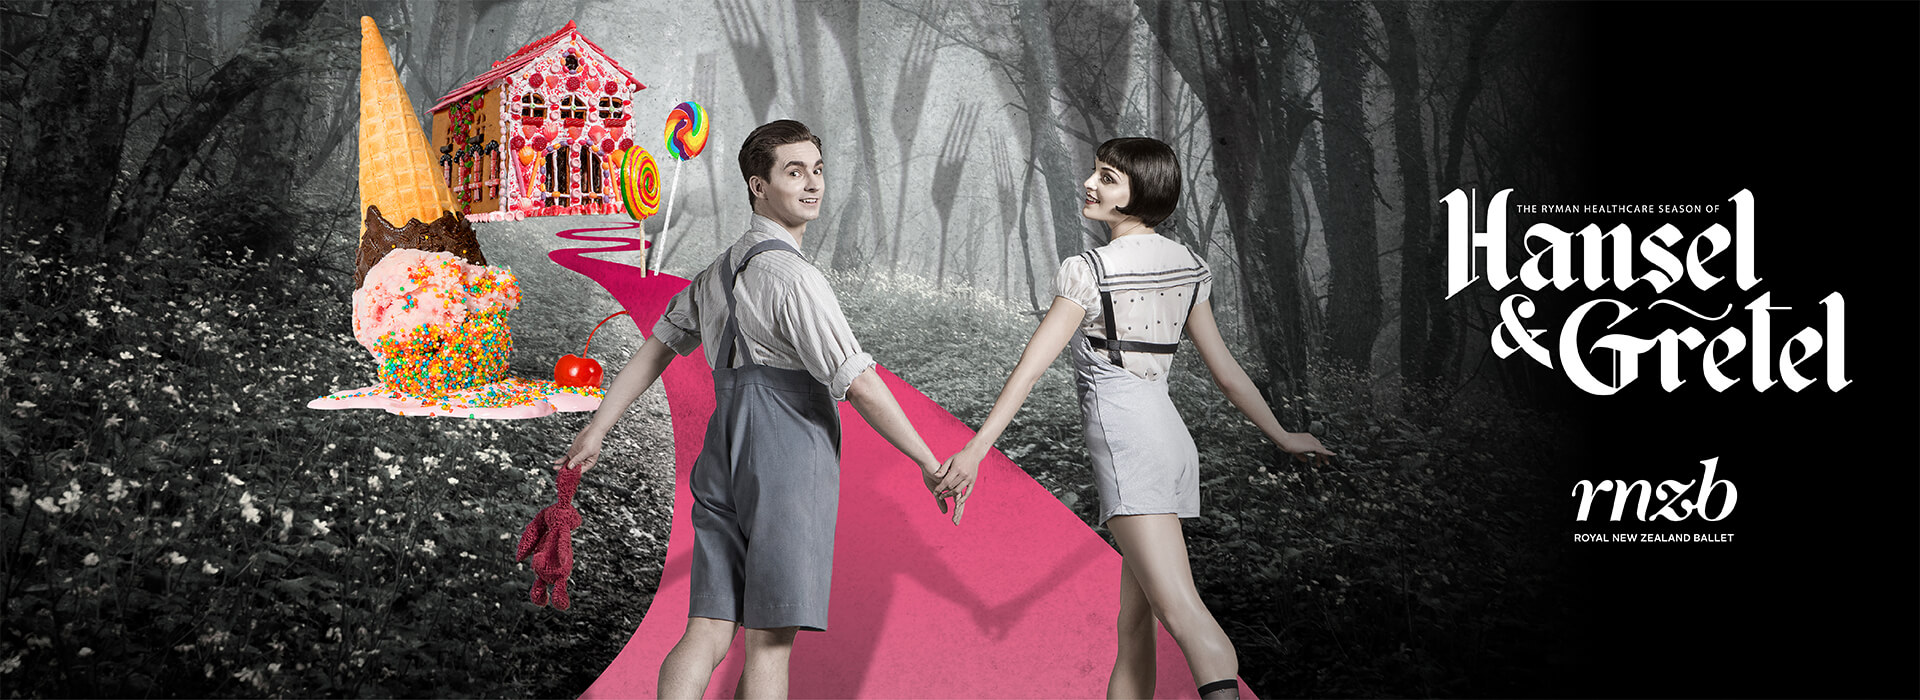 Hansel and Gretel - Web Page Hero 1920 x 700px